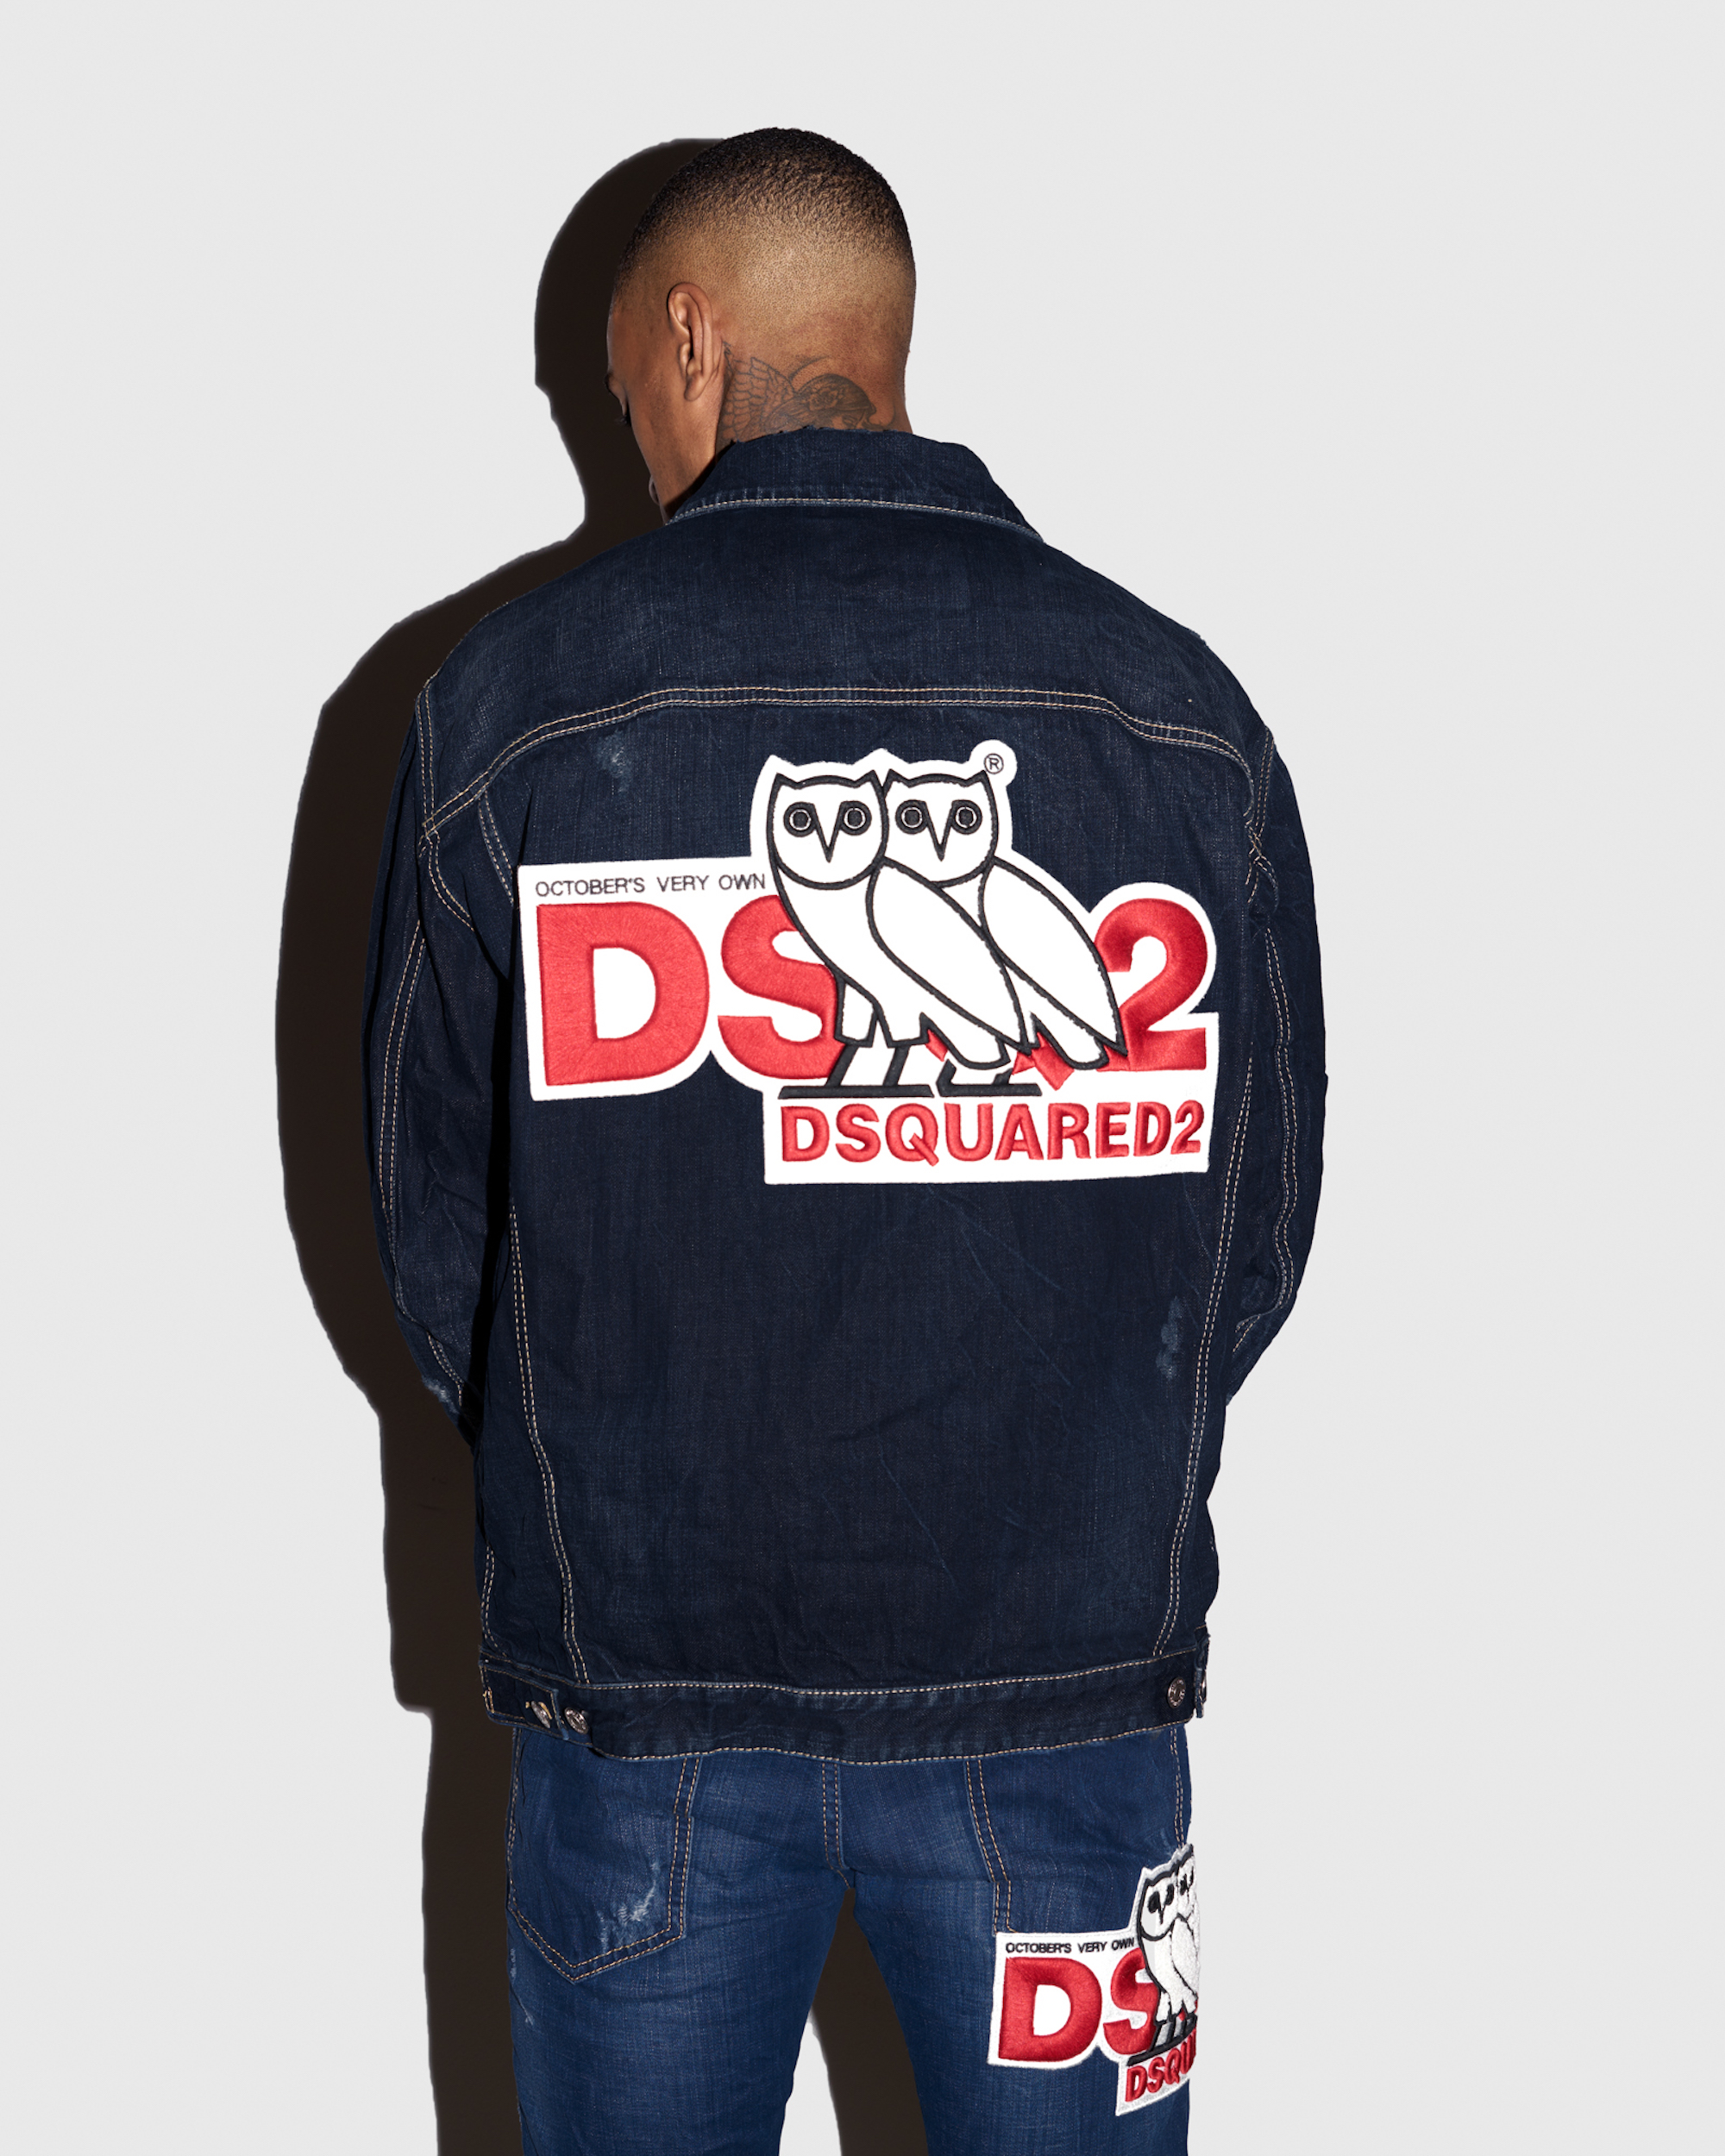 DSQUARED2 x OVO denim JACKET 3